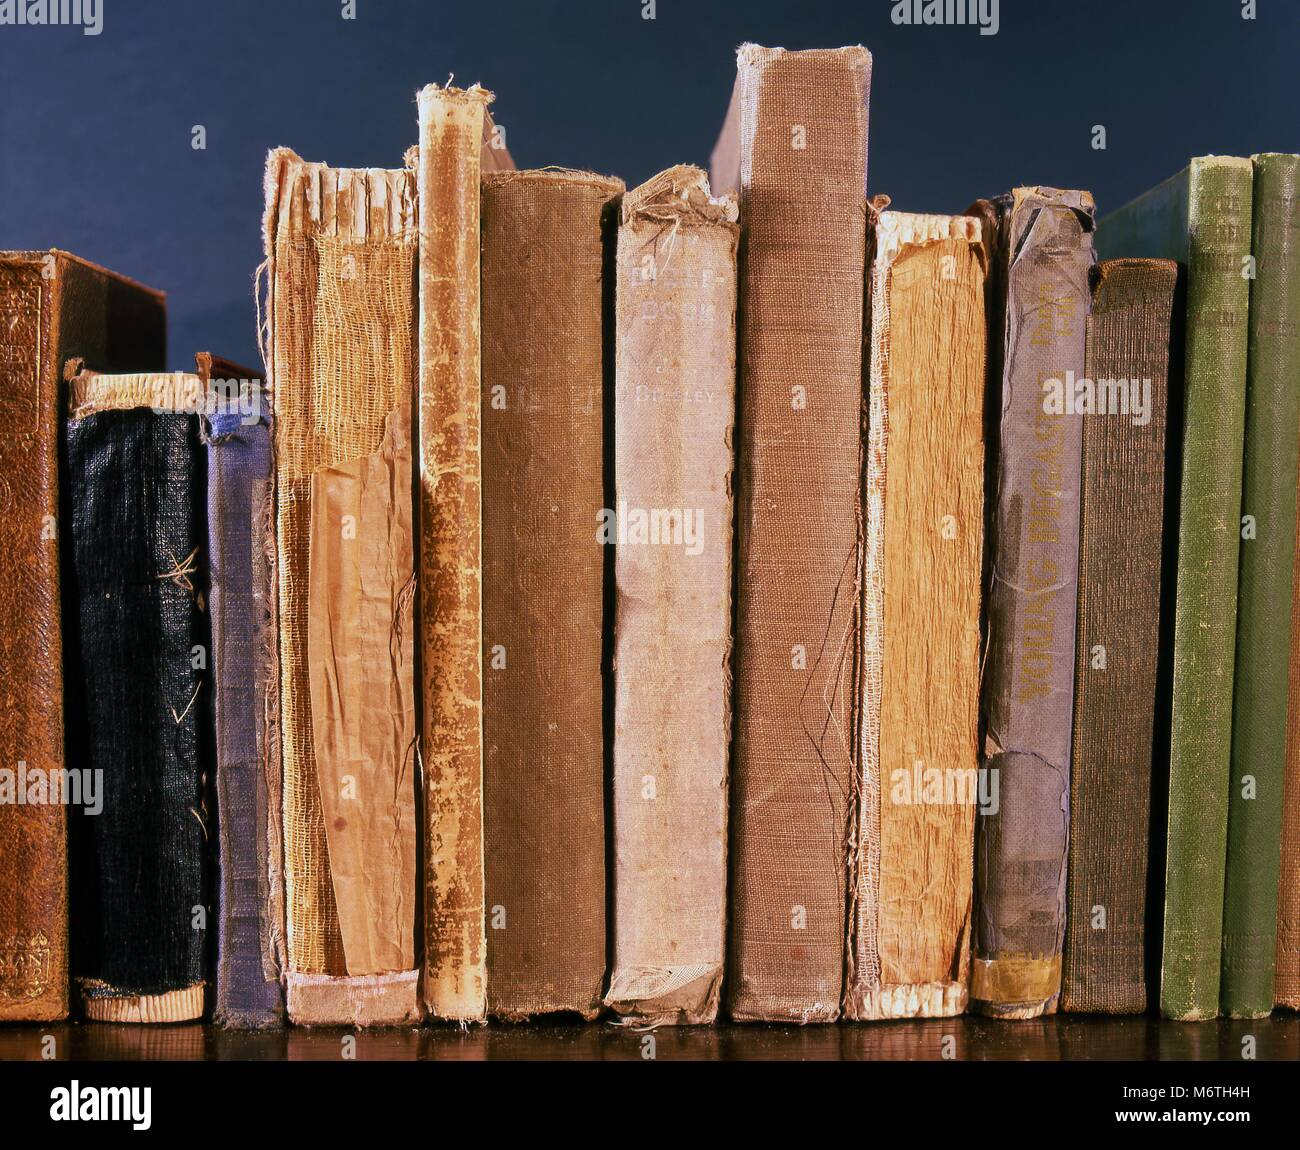 Old books on a shelf showing signs of wear and ageing. - Stock Image